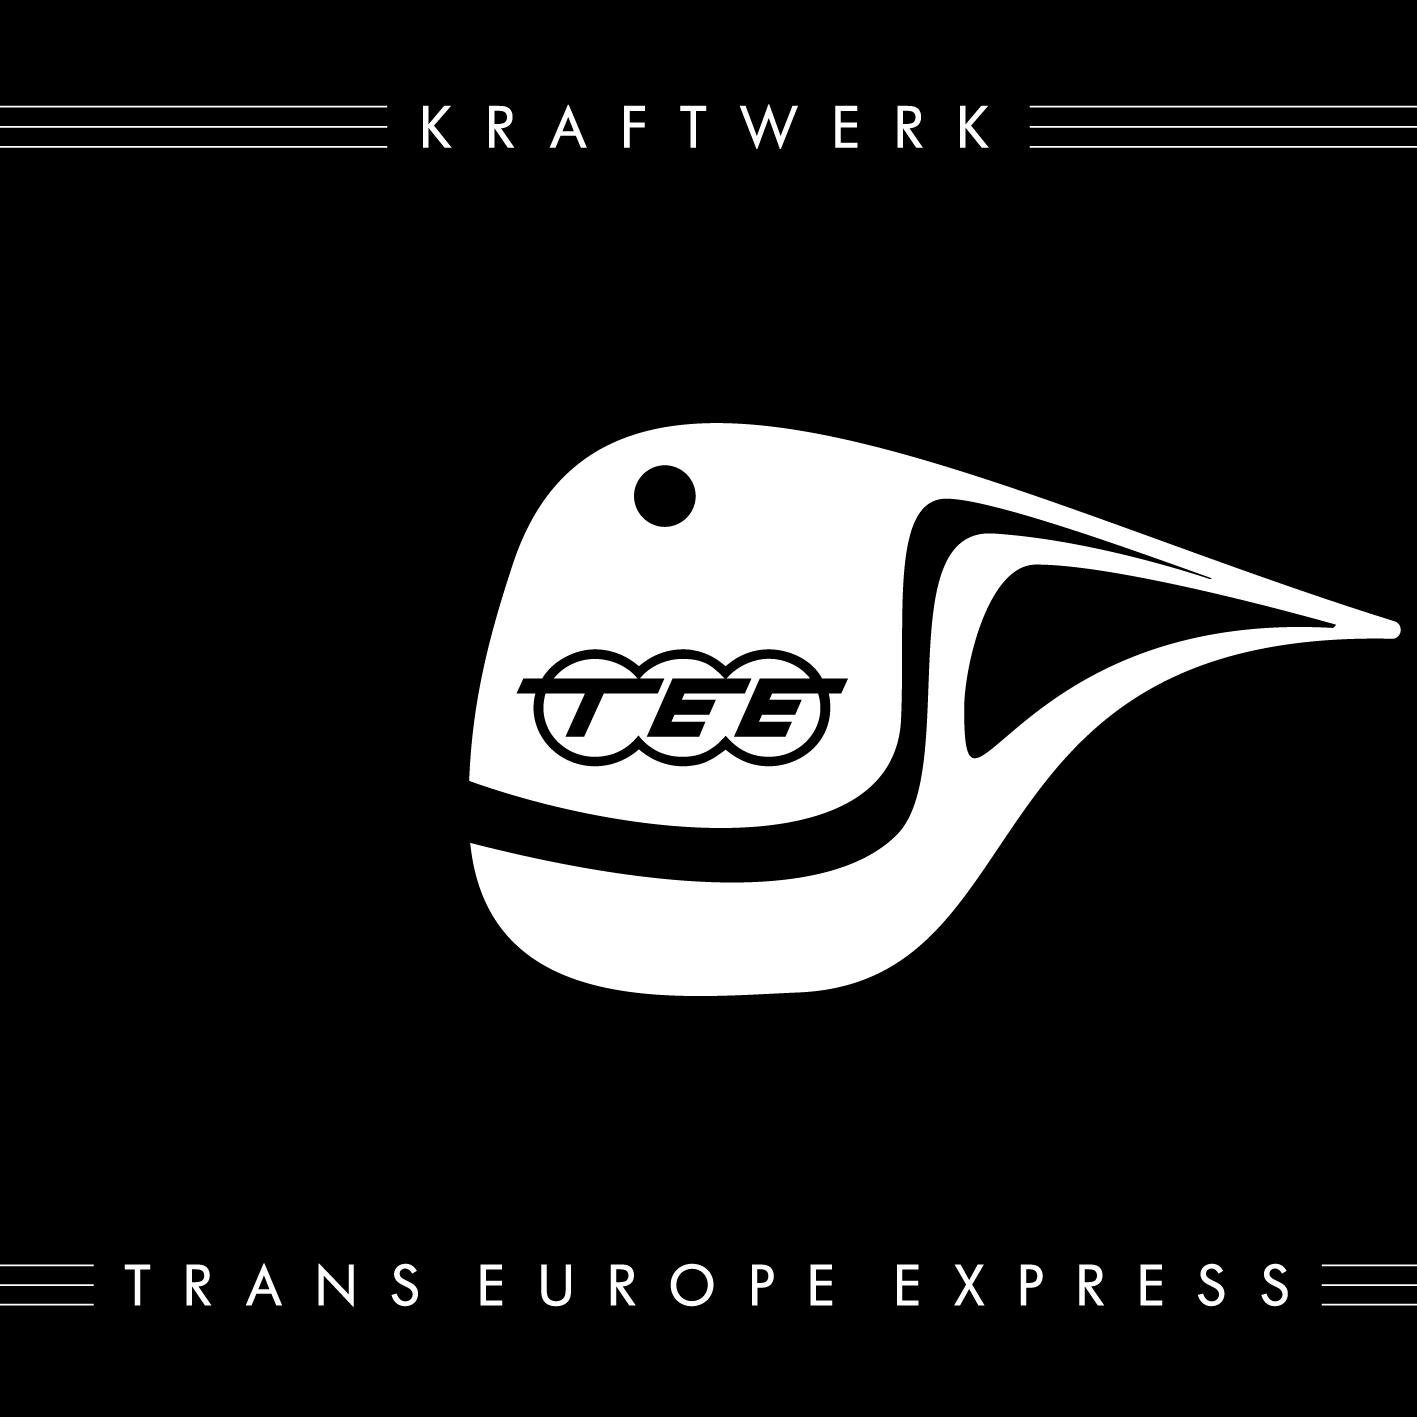 vinyl LP KRAFTWERK TRANS-EUROPE EXPRESS (2009 EDITION)